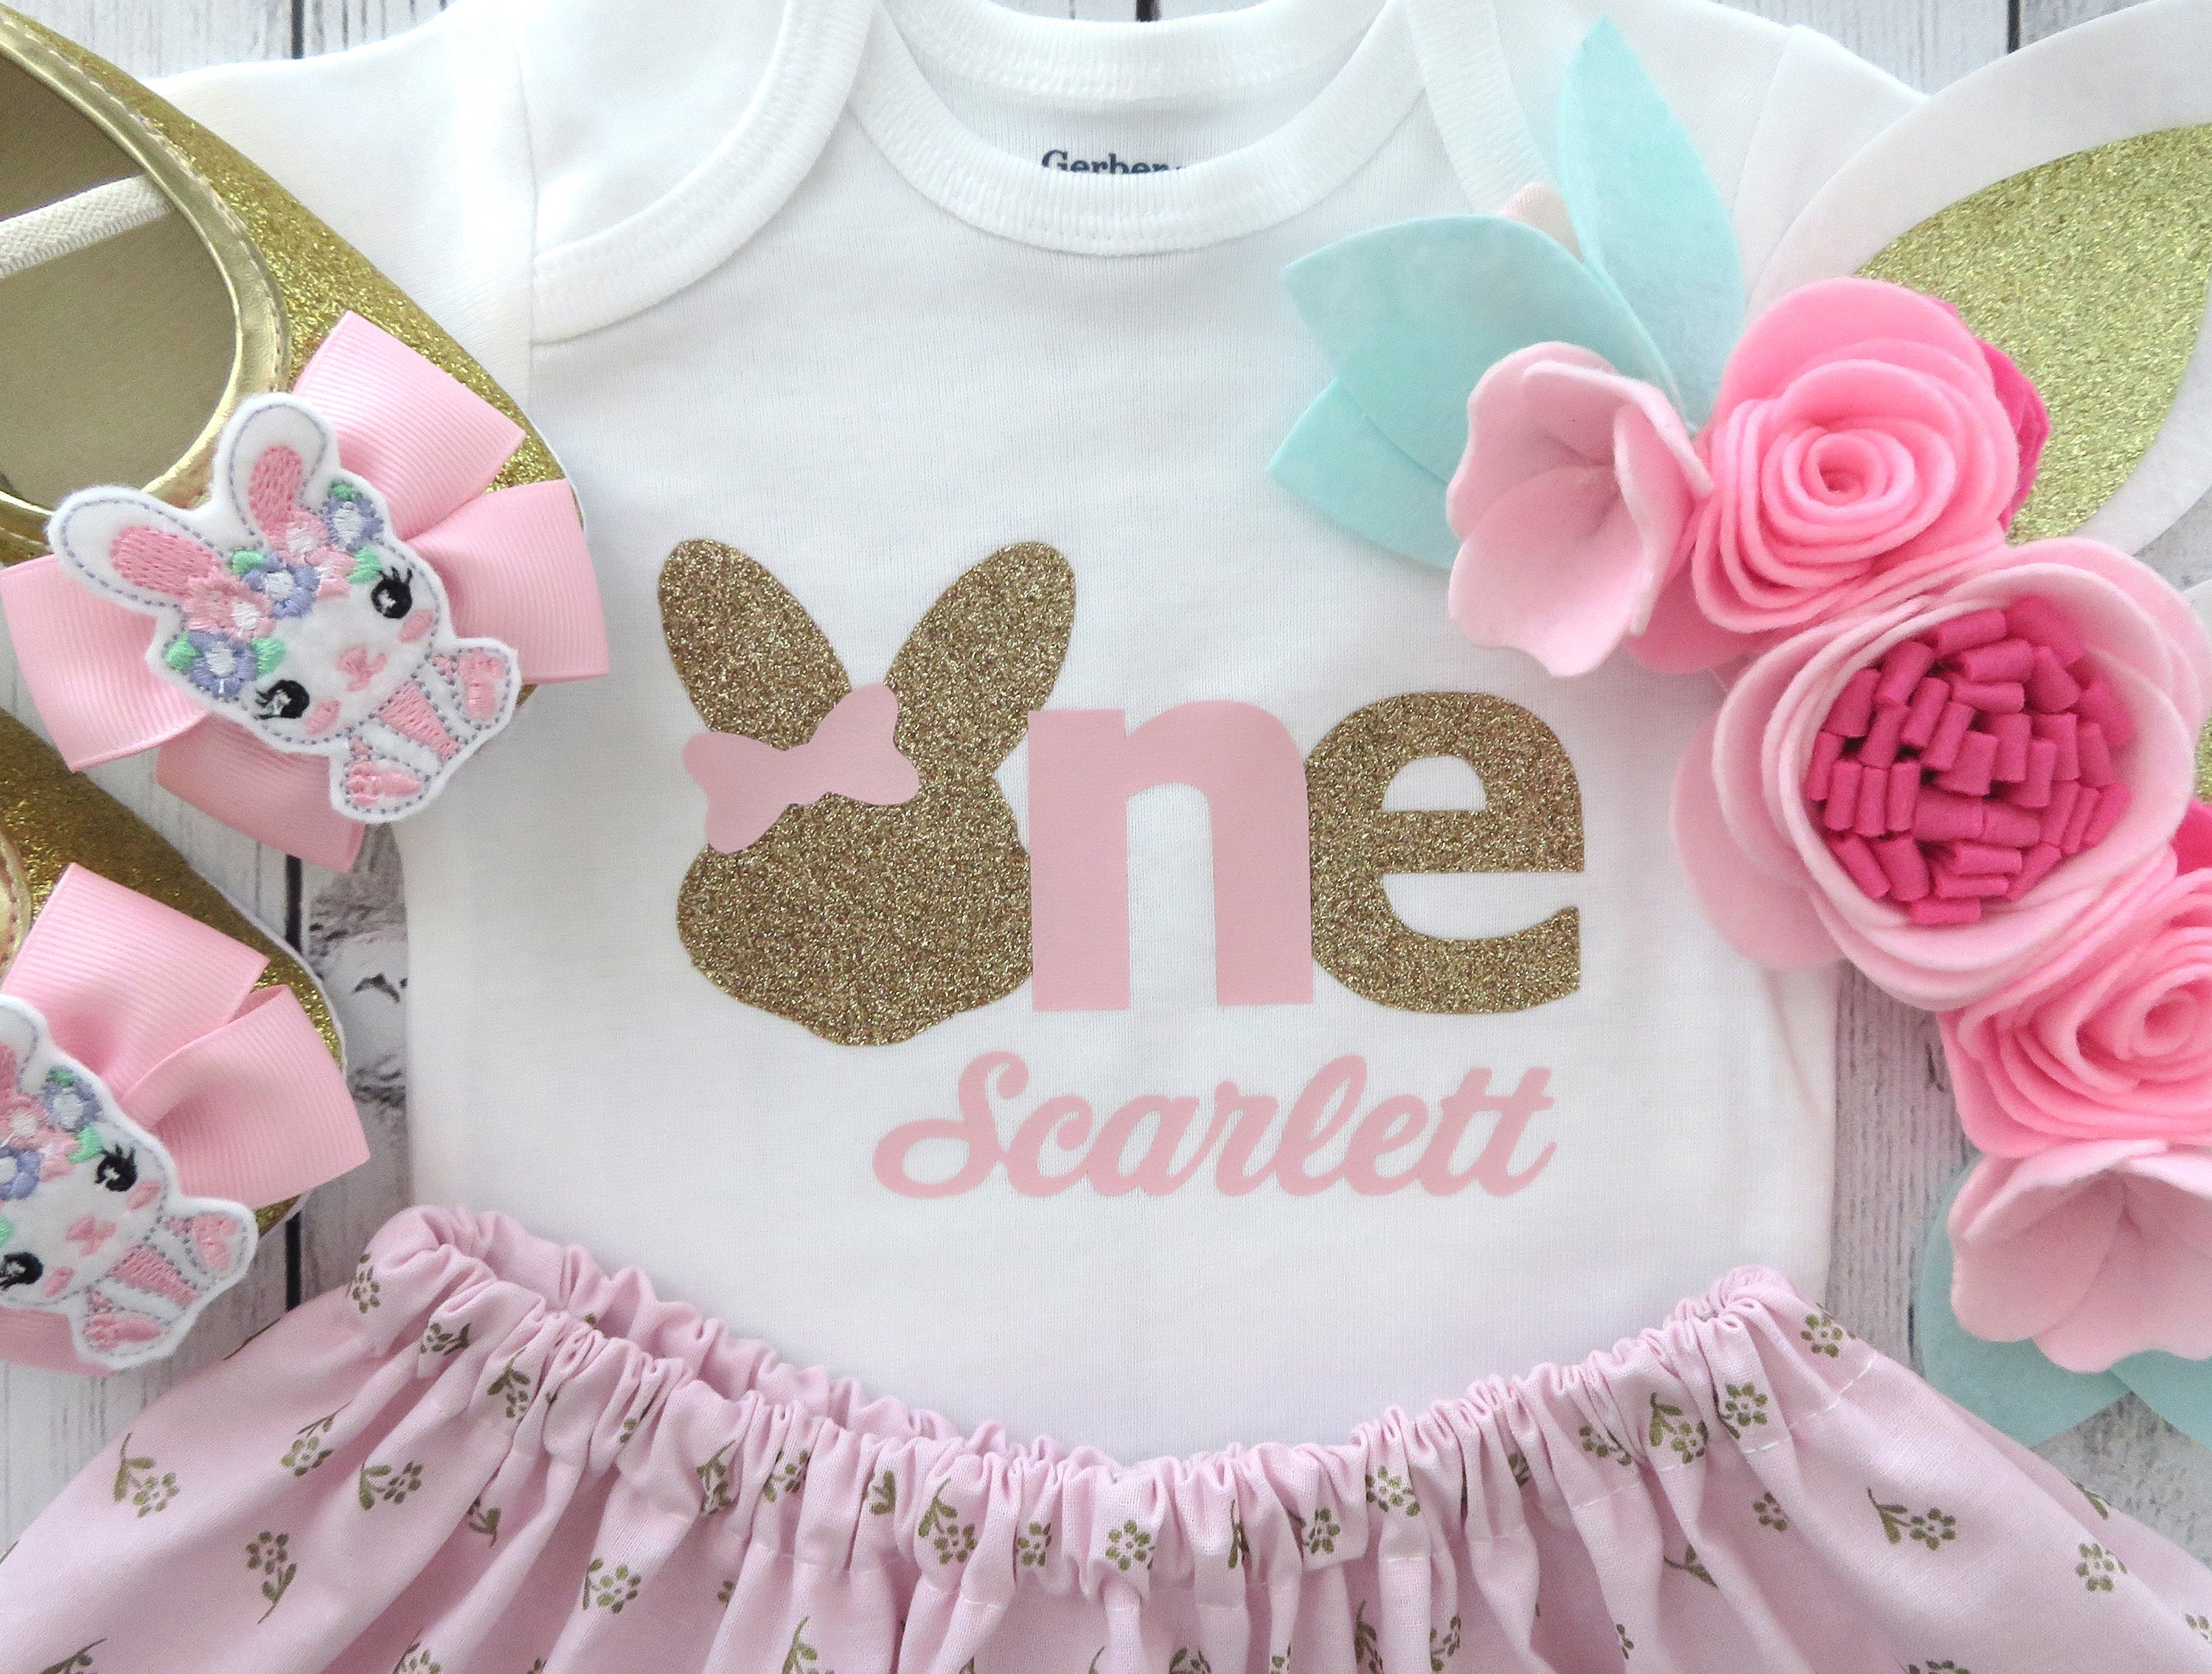 Bunny 1st Birthday Outfit in pink and gold floral - some bunny is one, bunny 1st bday outfit, bunny ears headband, bunny shoes, first bday